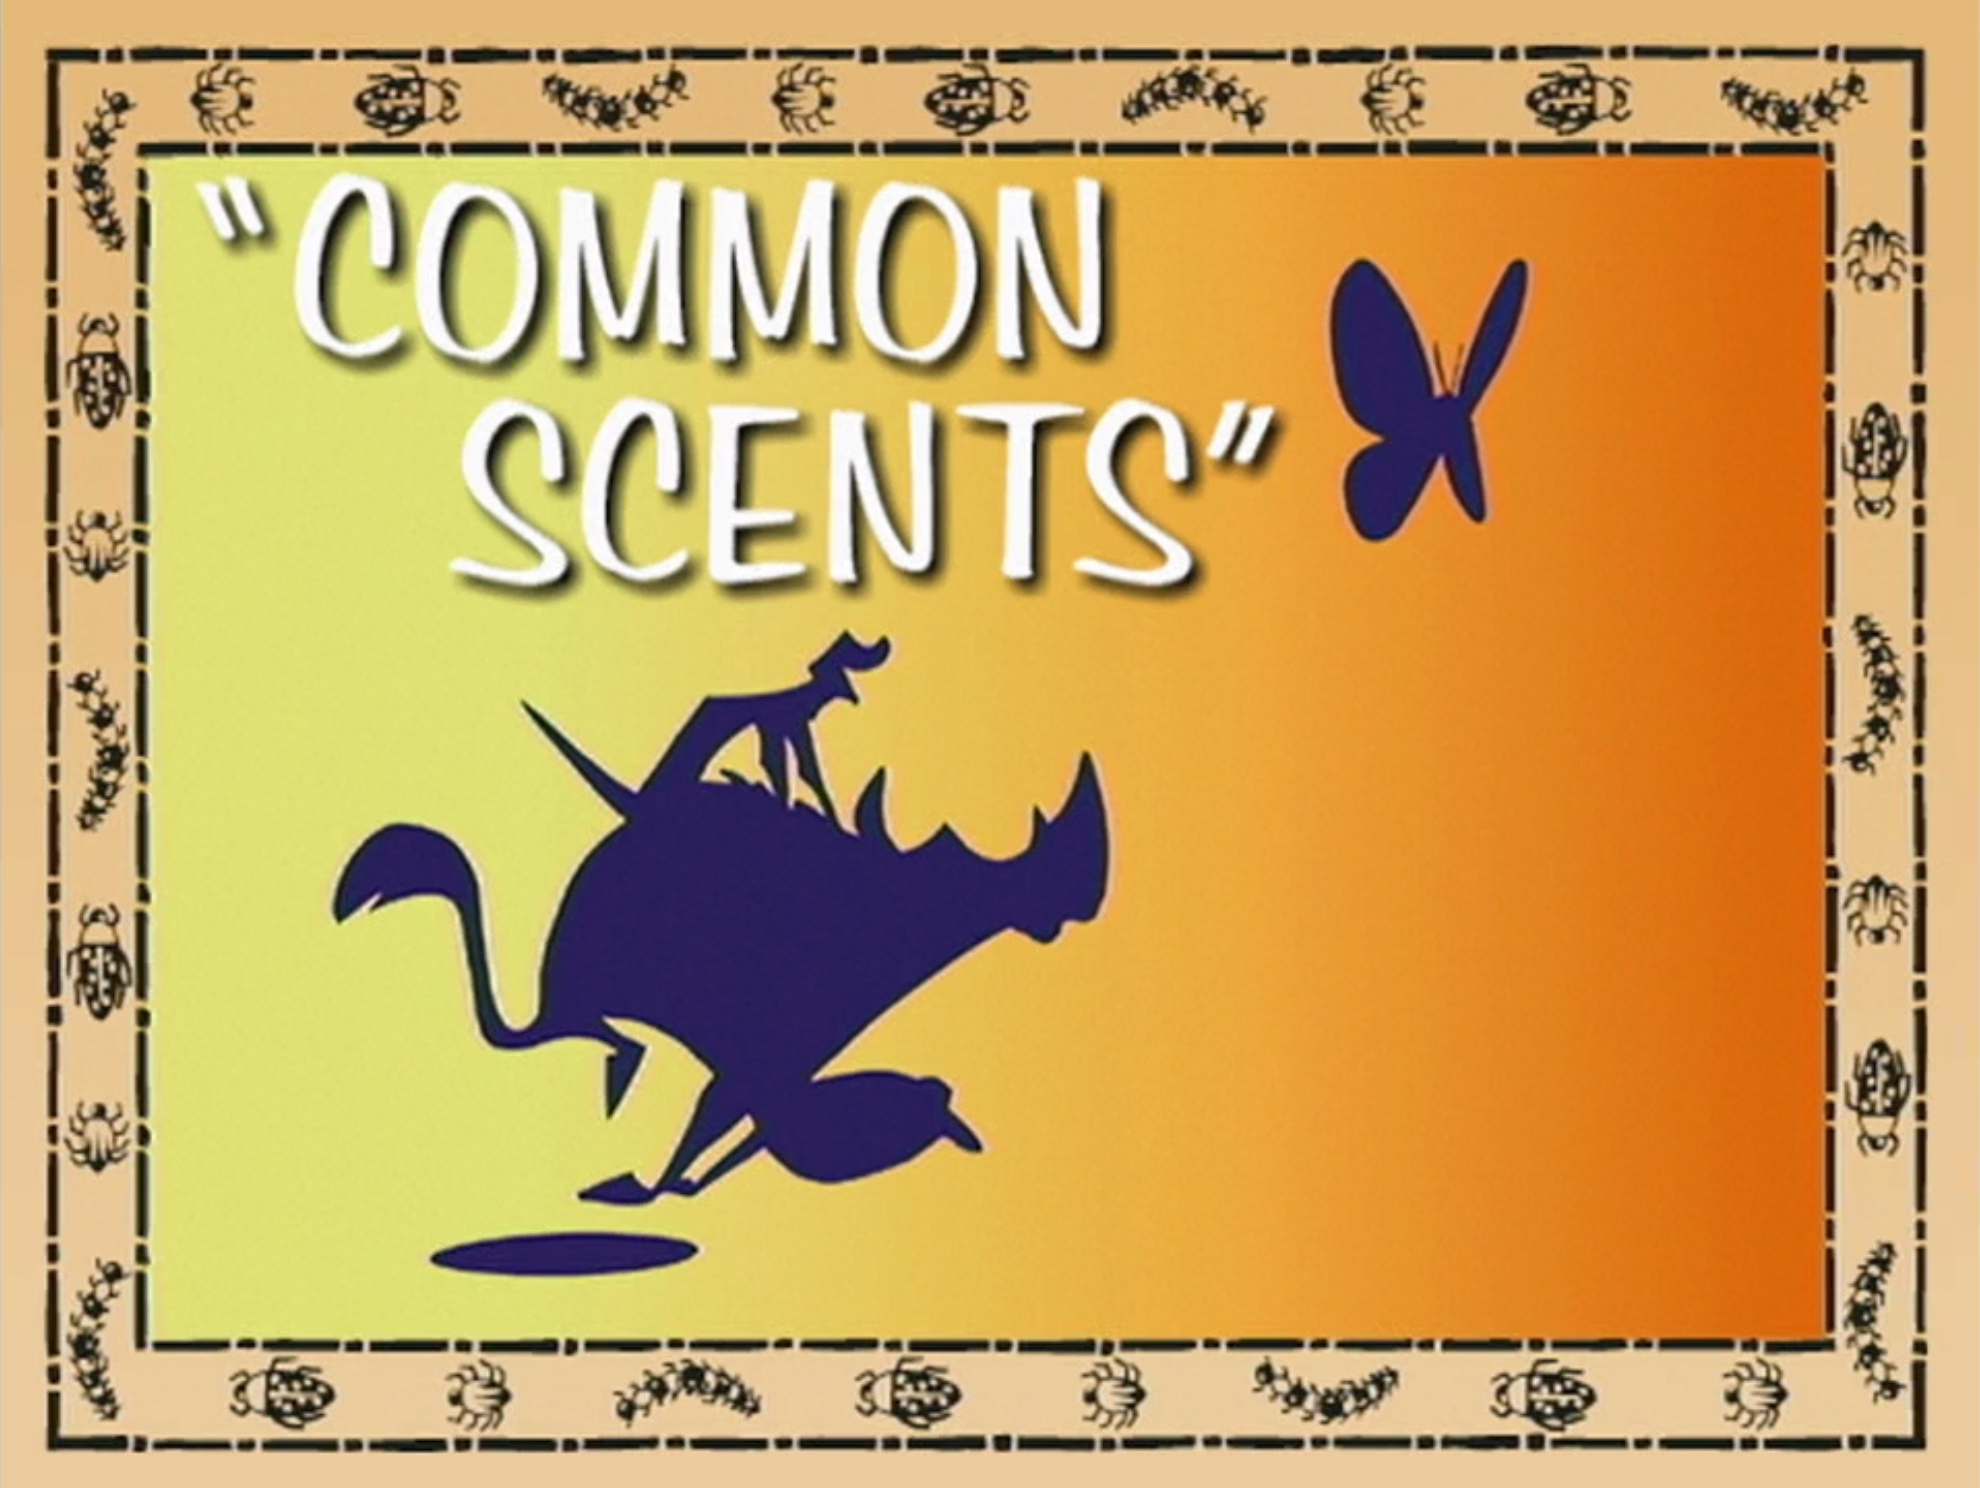 I have been ordering from the Common Scents for at least 5 years now. I am happy with my orders abo ut 75% of the time. The one complaint I have is that some of 4/4().